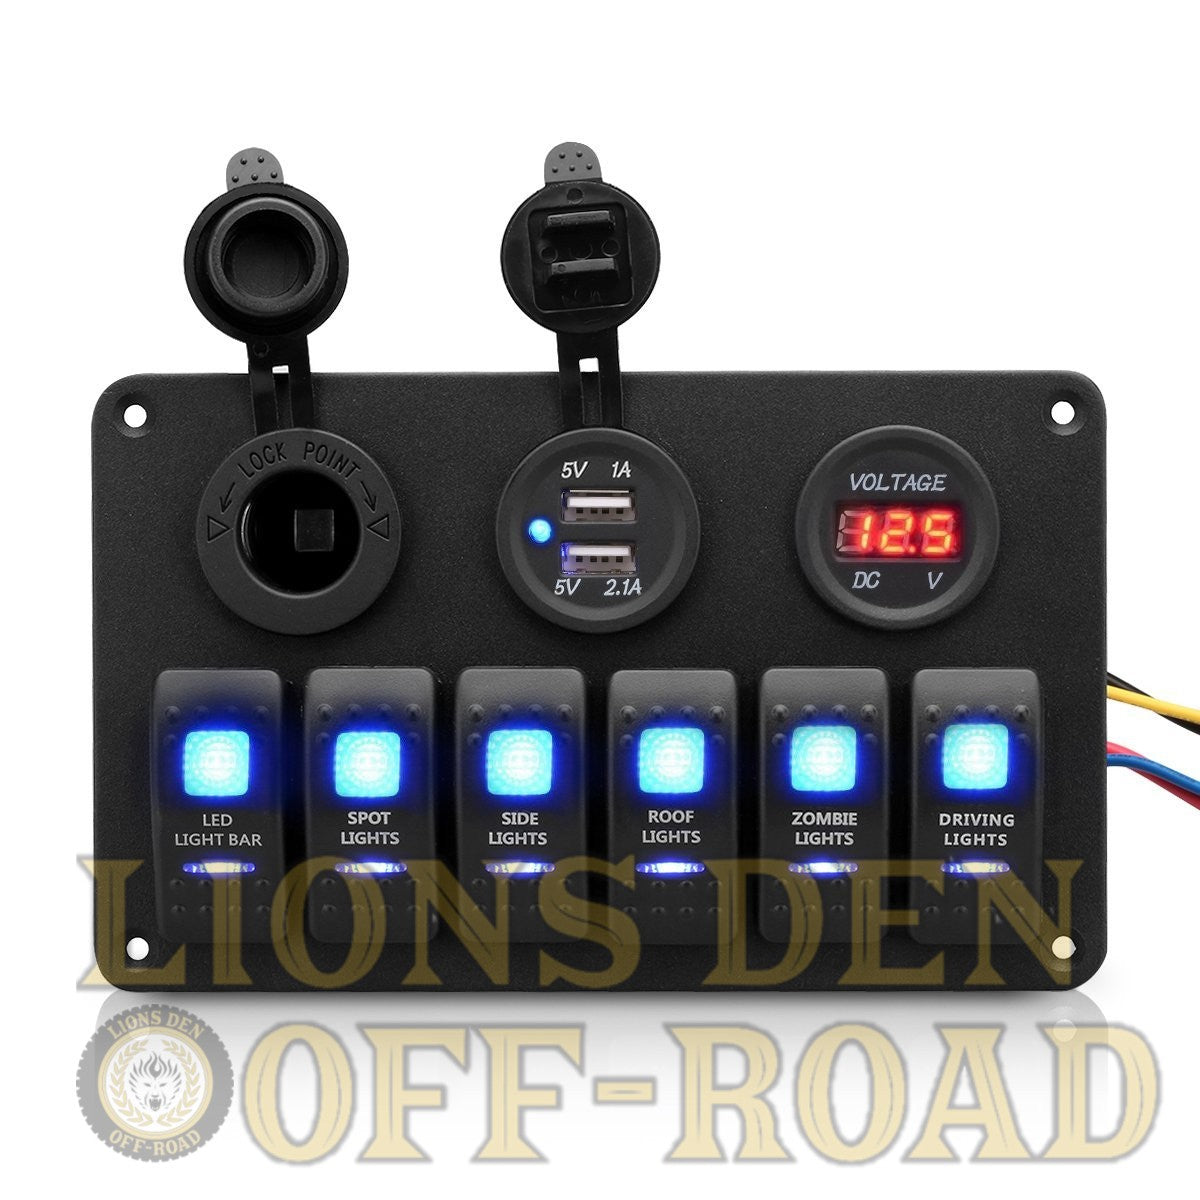 Six Switch Rocker Panel W Usb 12v Source Volt Meter Lions Den 12 Fuse Box Enclosed Off Road